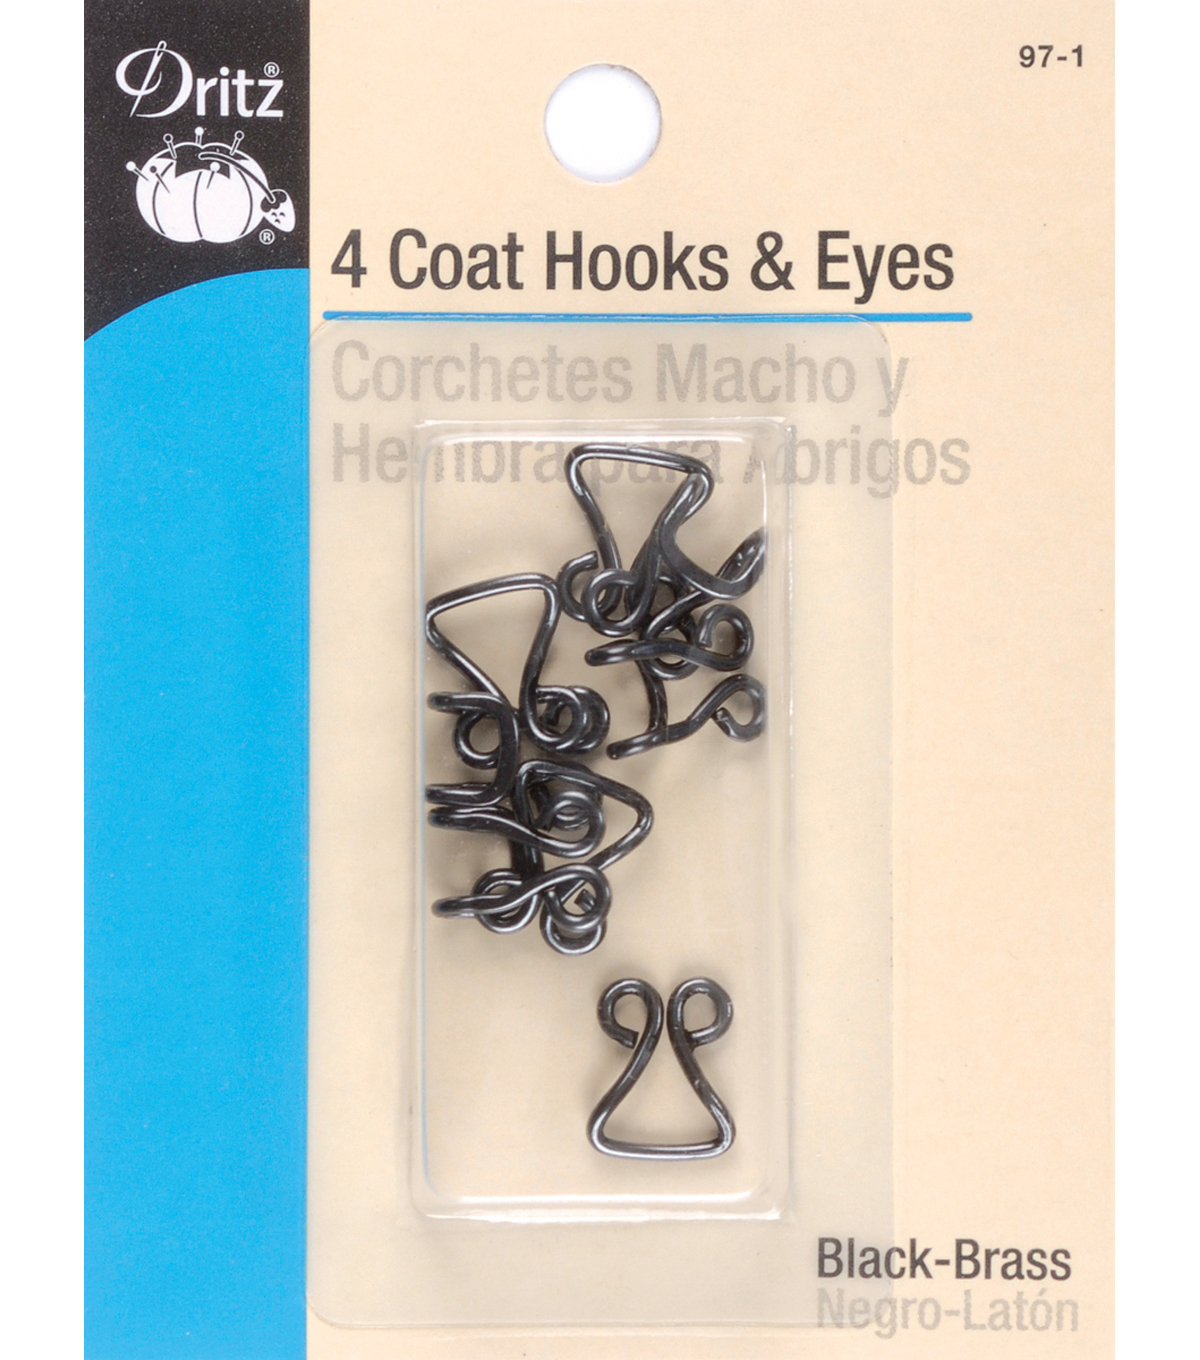 Dritz 0.38\u0027\u0027 Coat Hook &Eye 4pcs